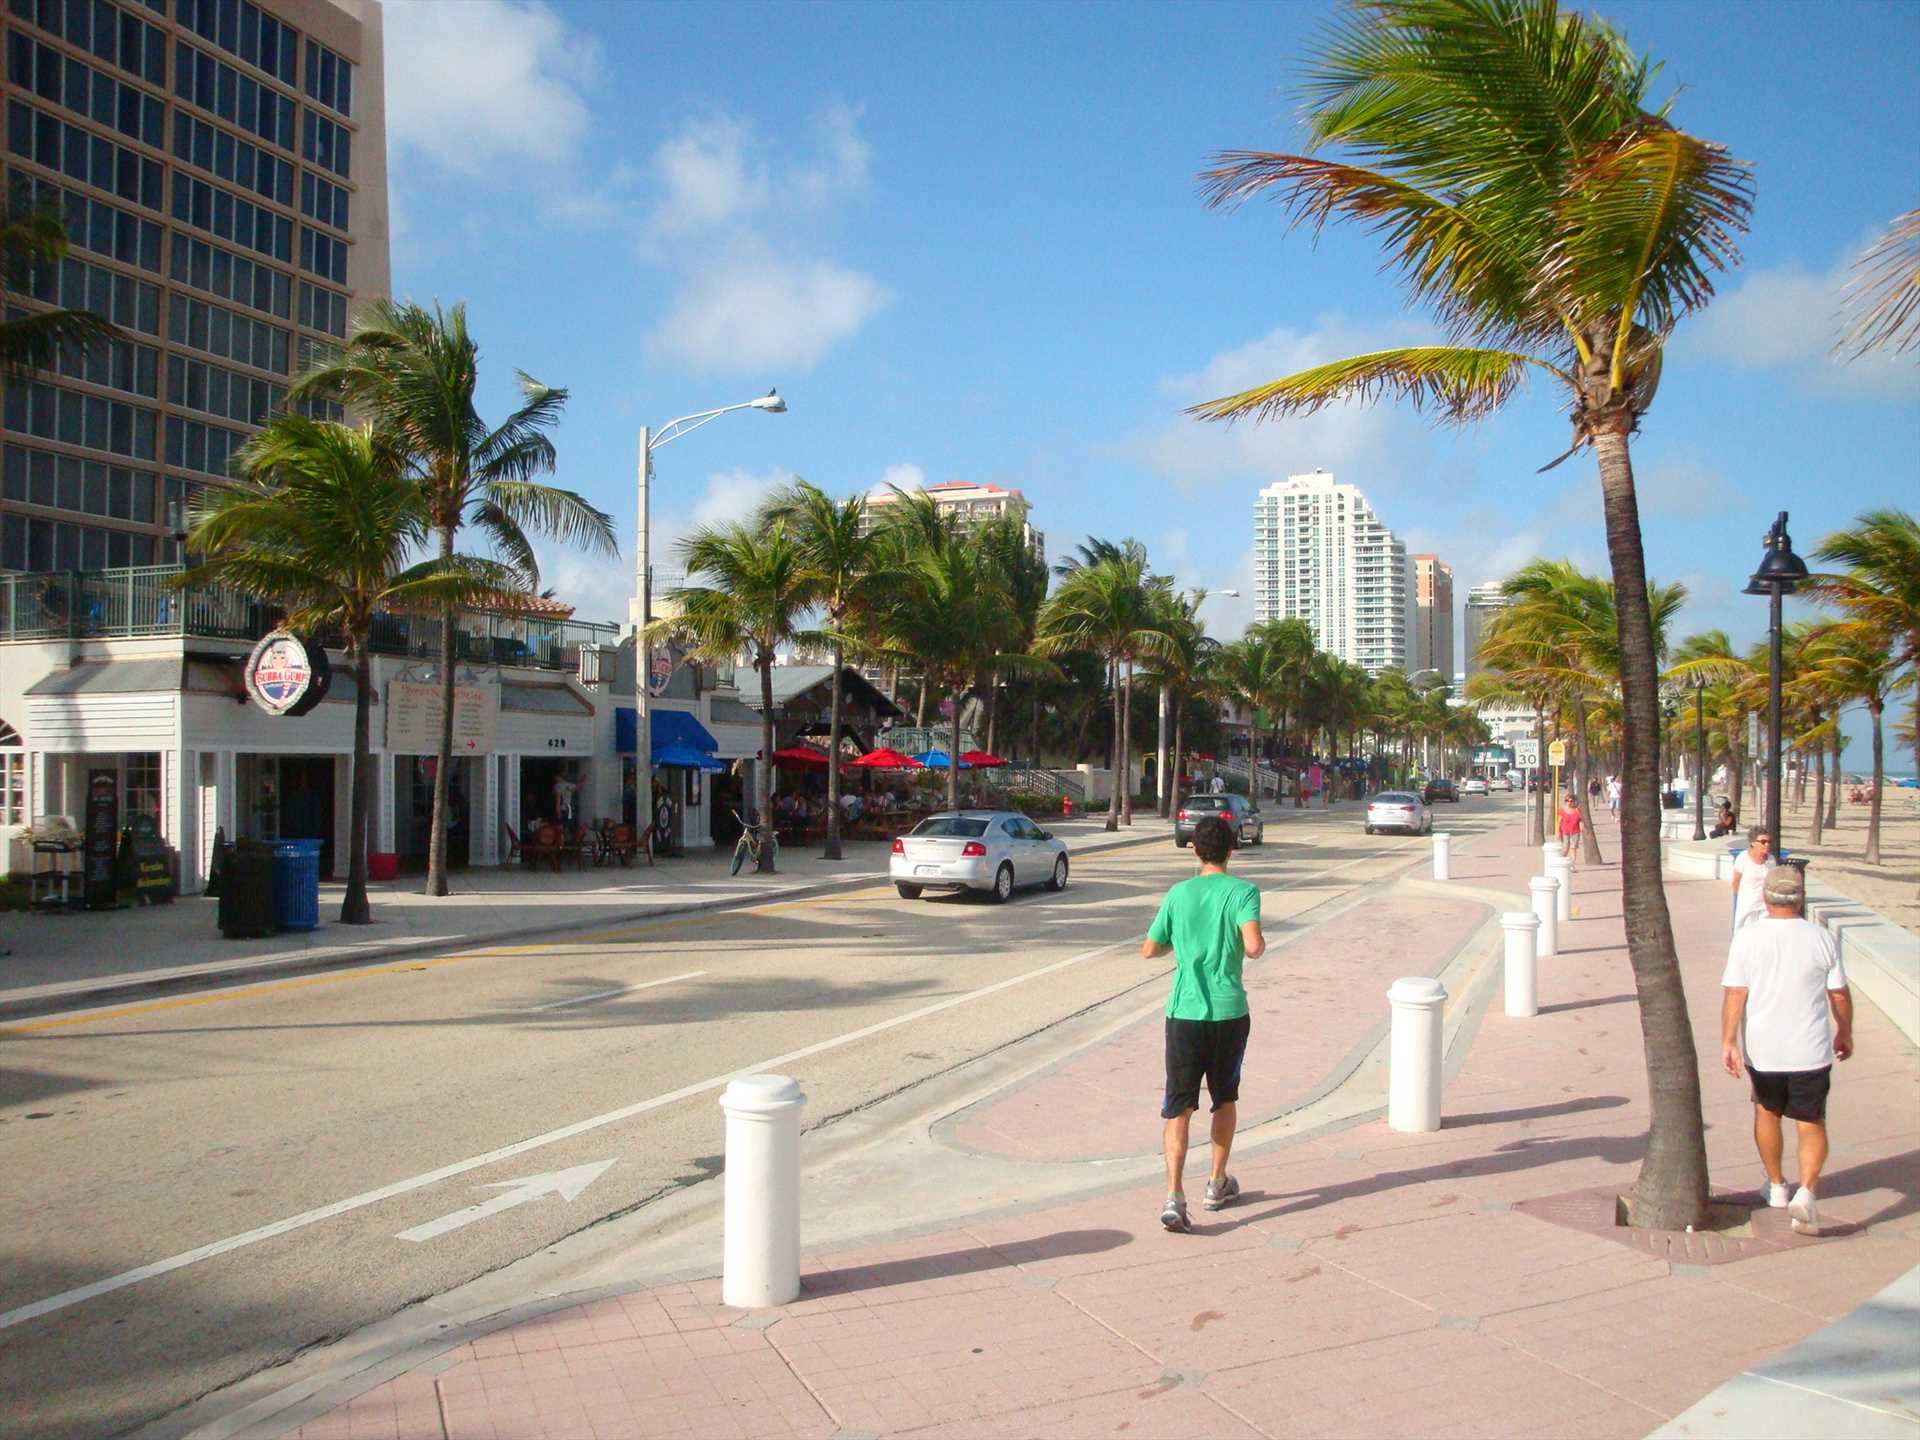 Take a walk along A-1-A and Fort Lauderdale beach.